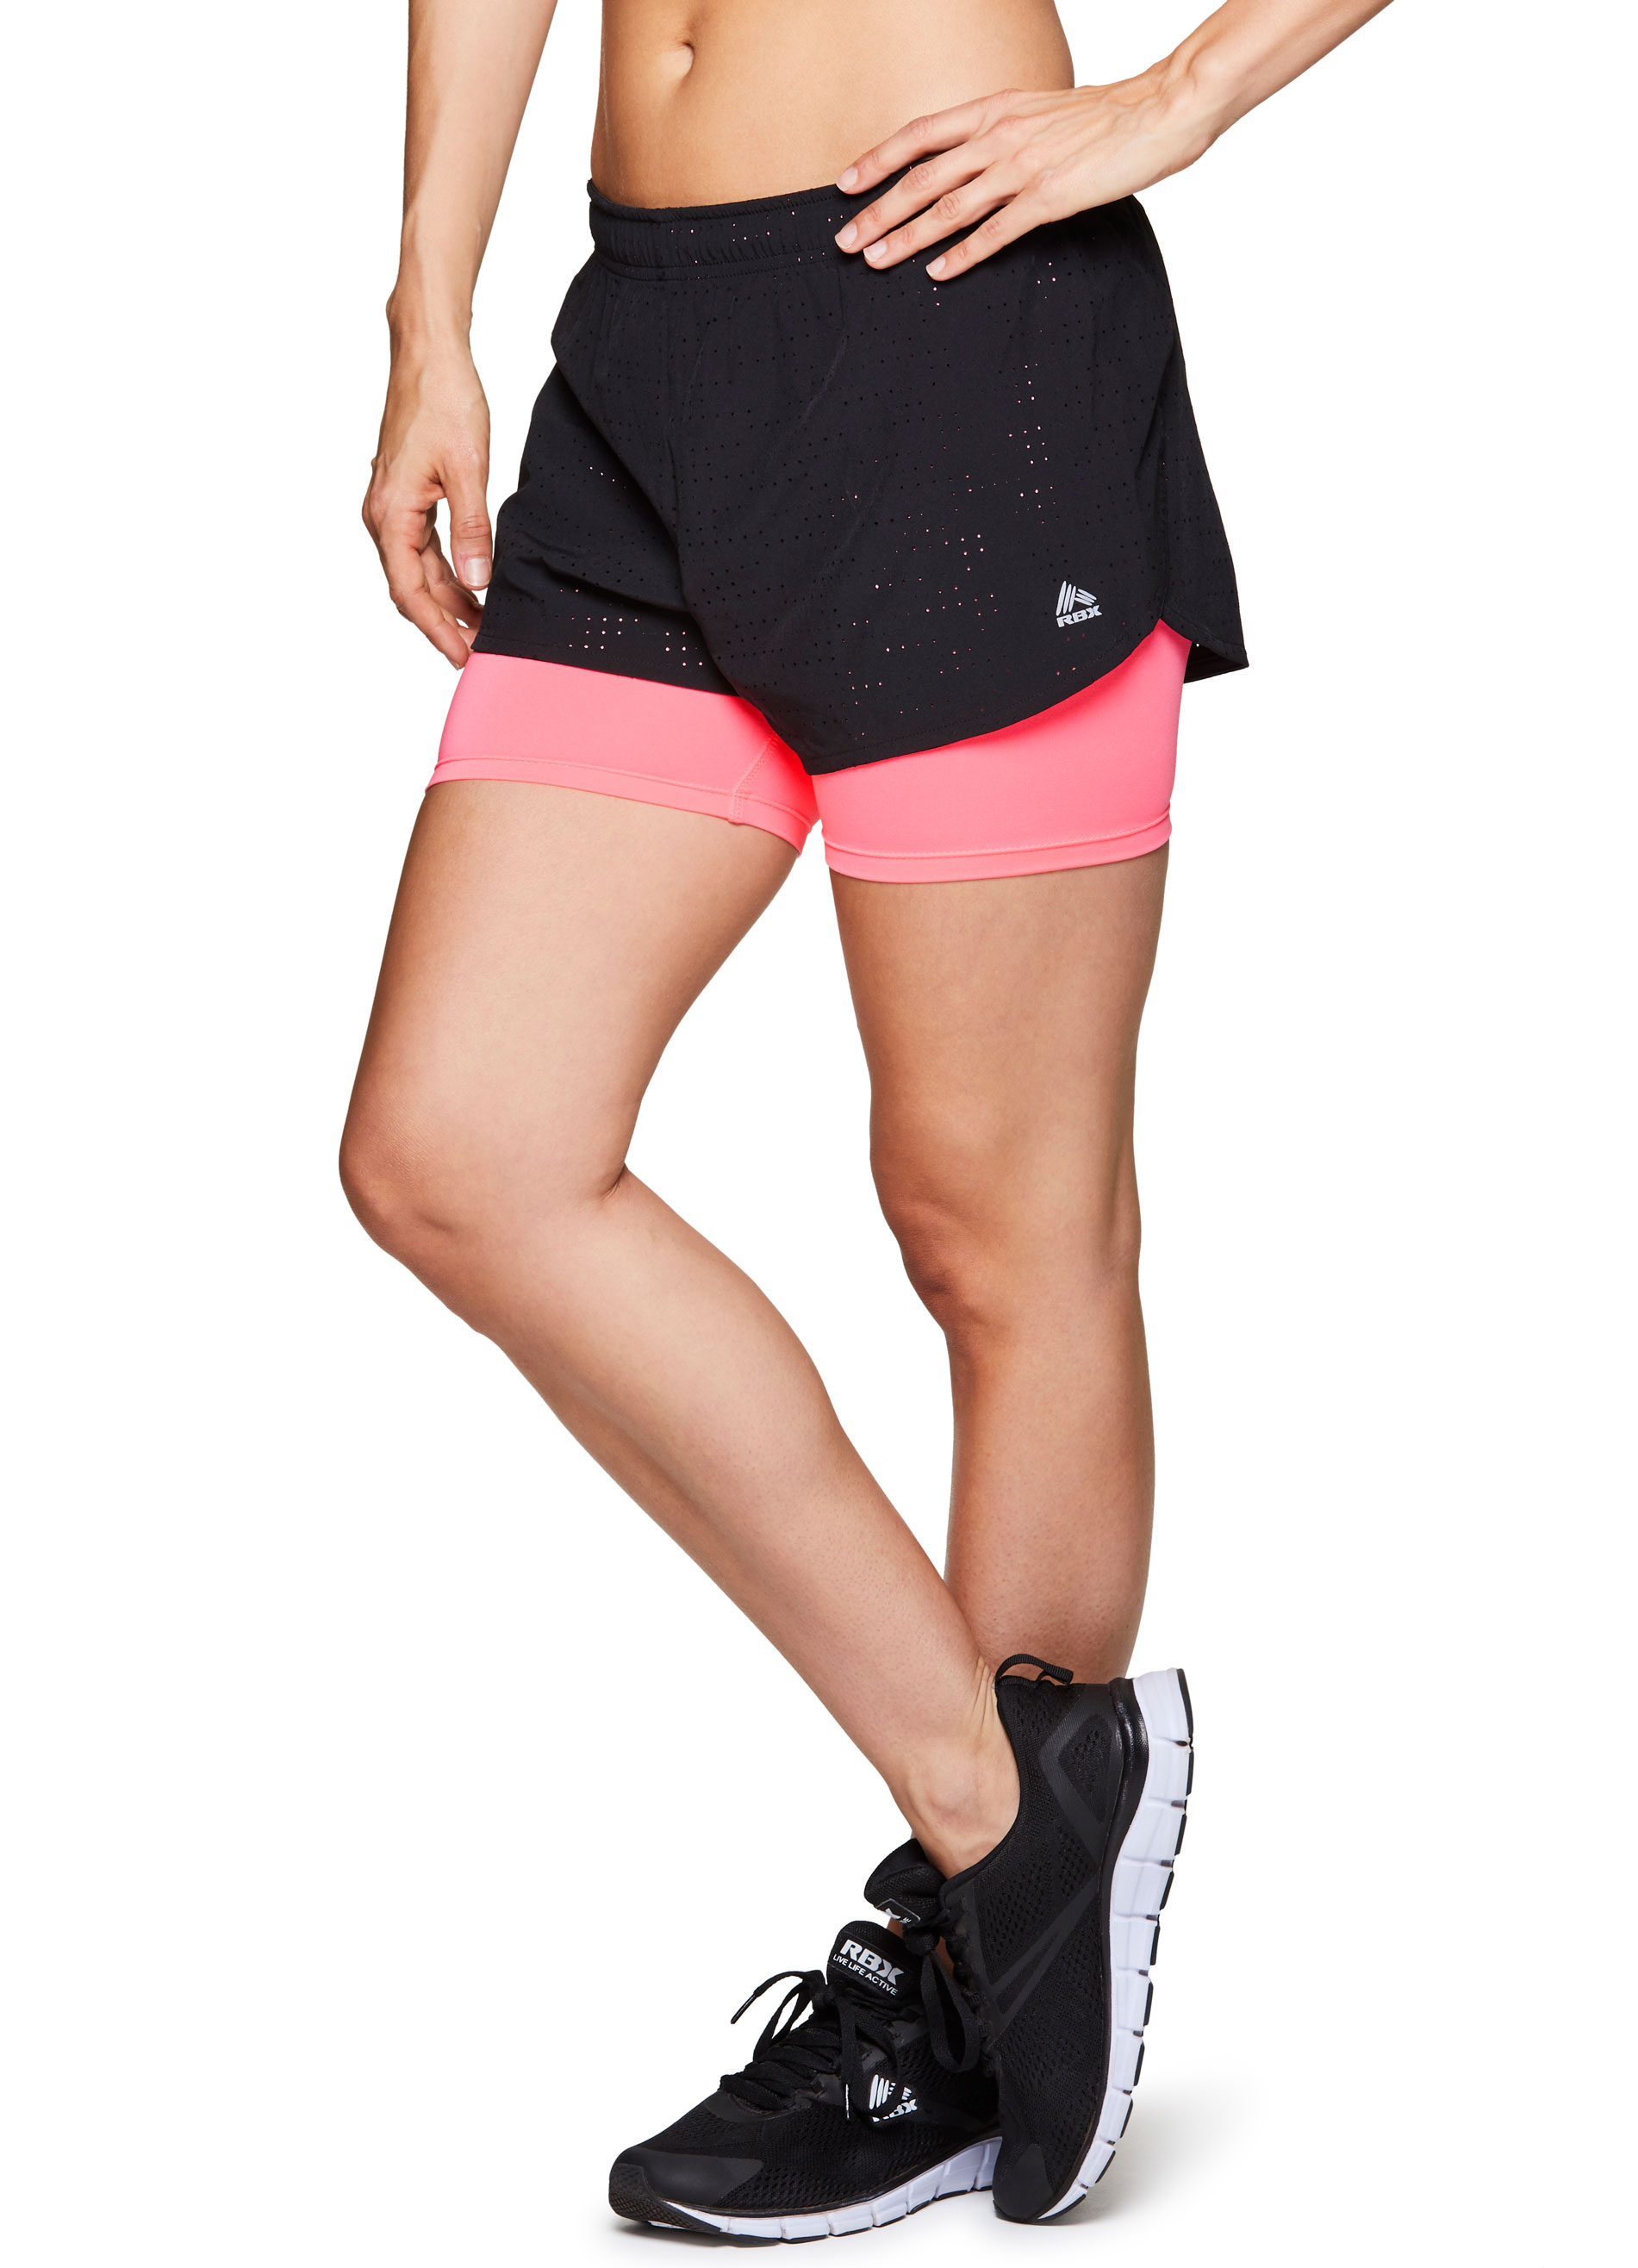 RBX Active Women's Workout Running Shorts